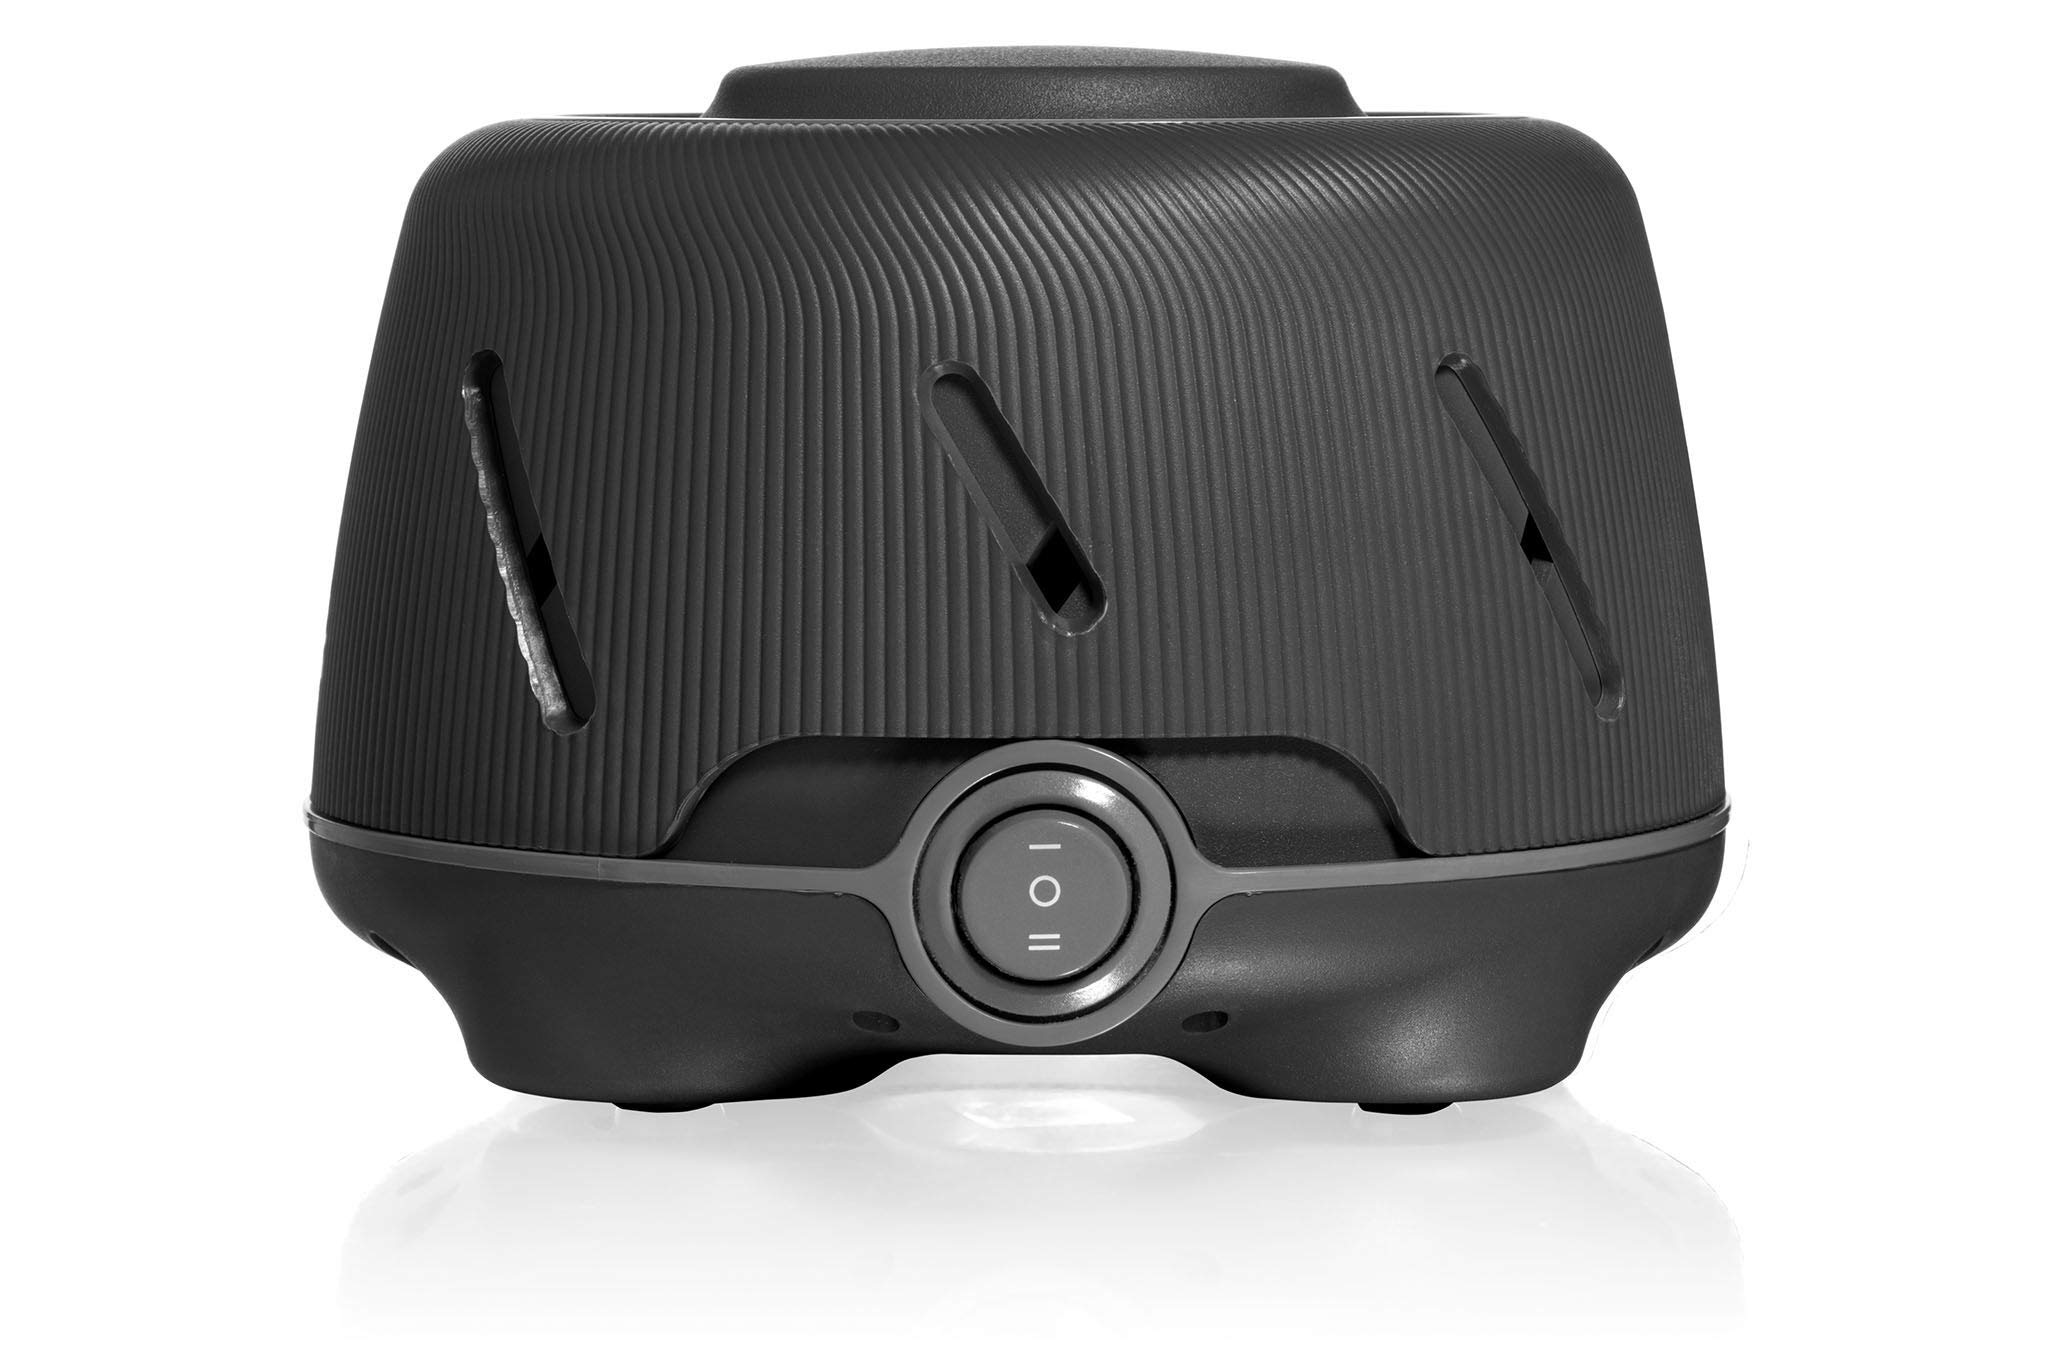 Marpac Dohm (Charcoal) | The Original White Noise Machine | Soothing Natural Sound from a Real Fan | Noise Cancelling | Sleep Therapy, Office Privacy, Travel | For Adults & Baby | 101 Night Trial by Marpac